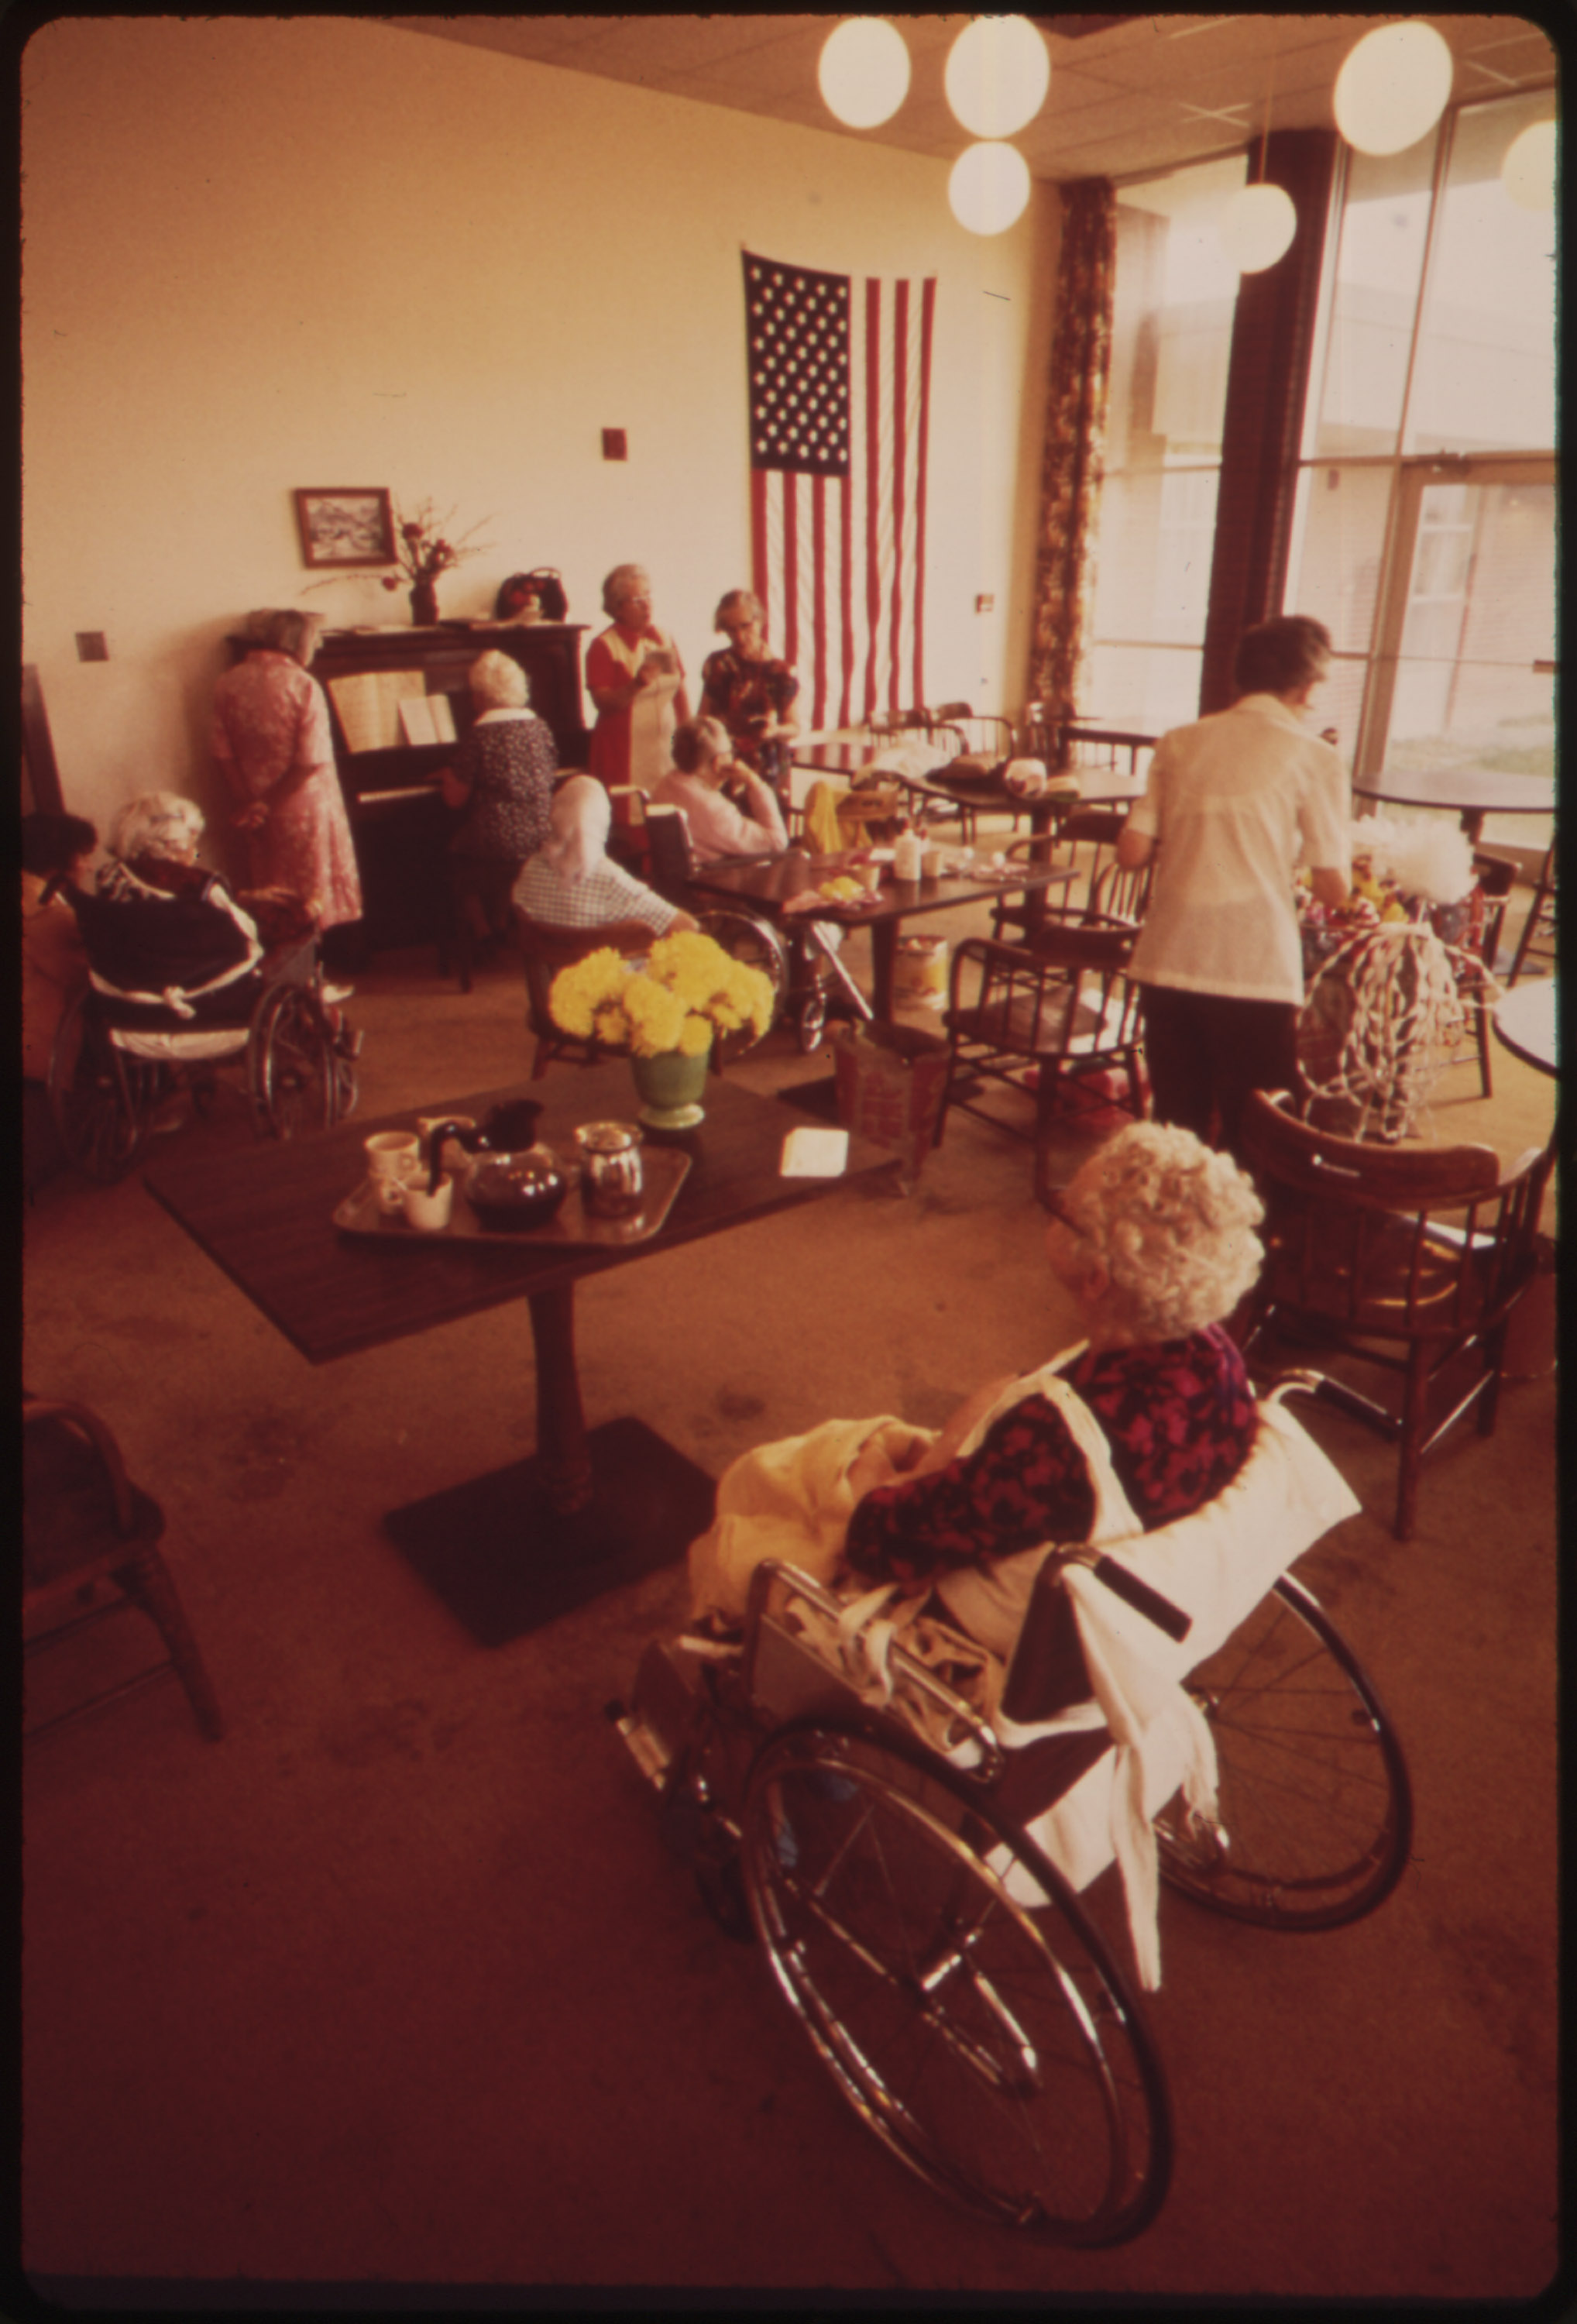 Restraints in Nursing Homes Such as Nursing Homes Will